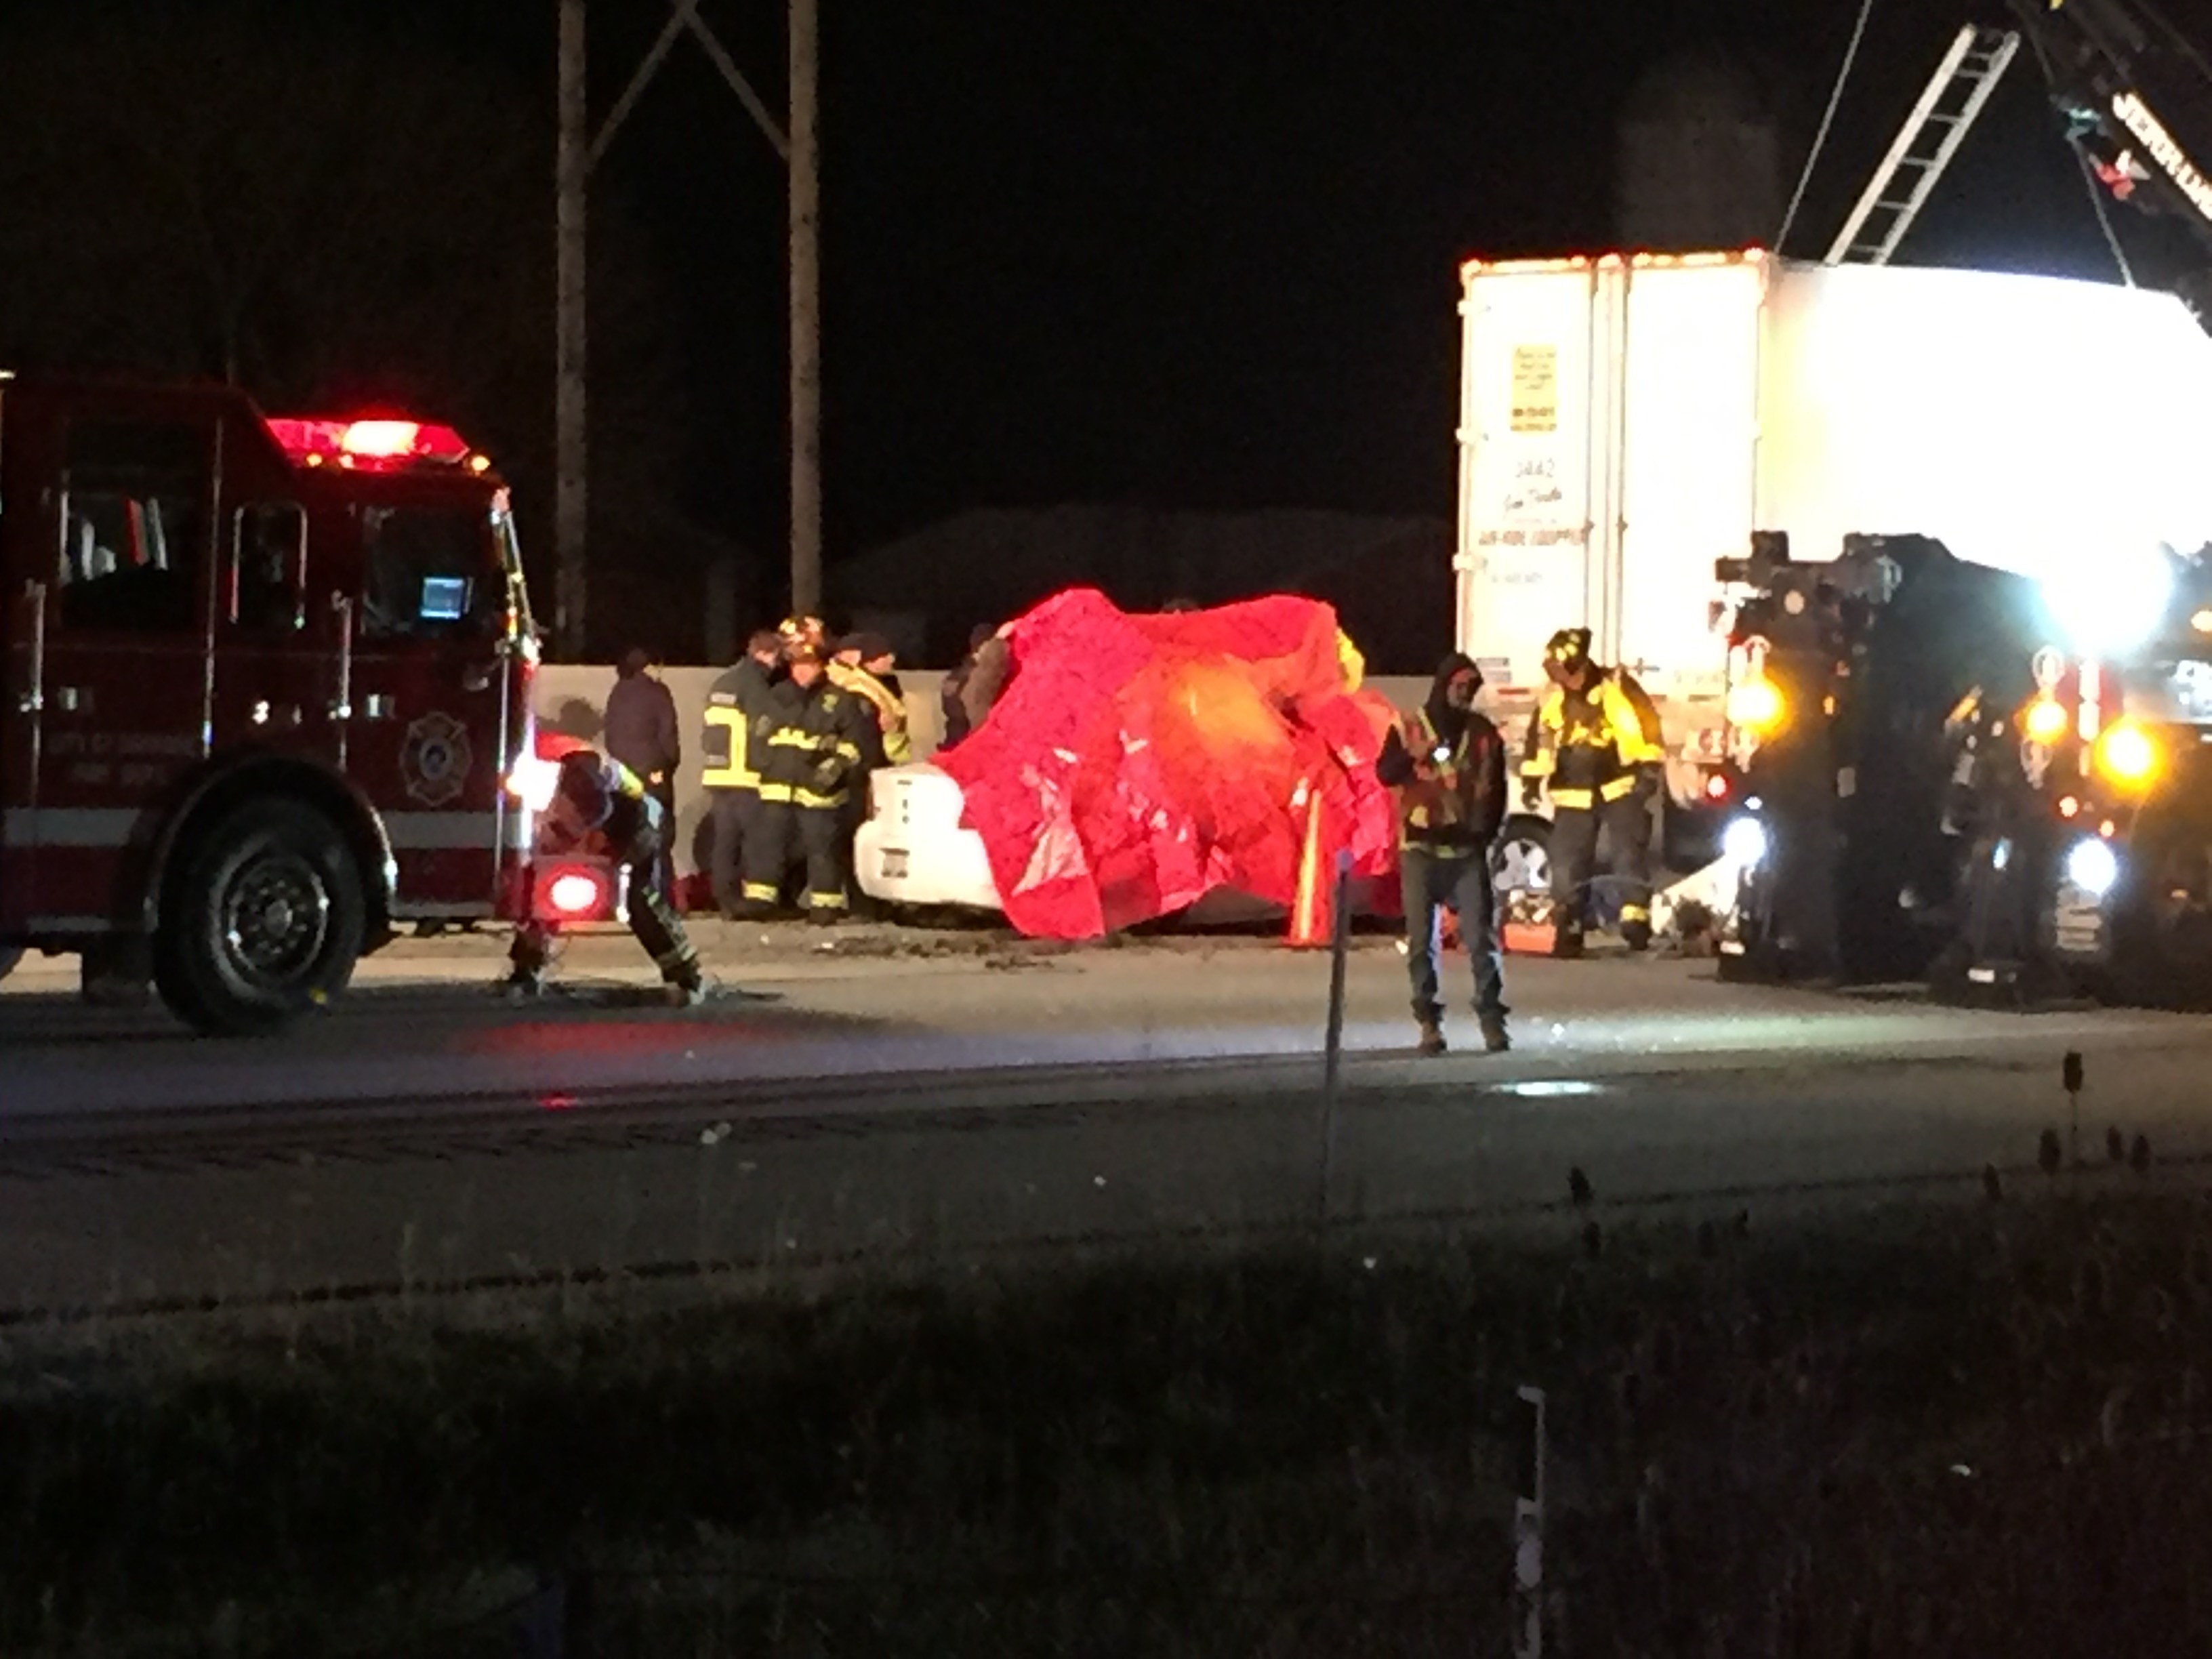 A crash on I-41 near Mile Marker 112 in Oshkosh, October 31, 2017. (WLUK/Andy Harbath)